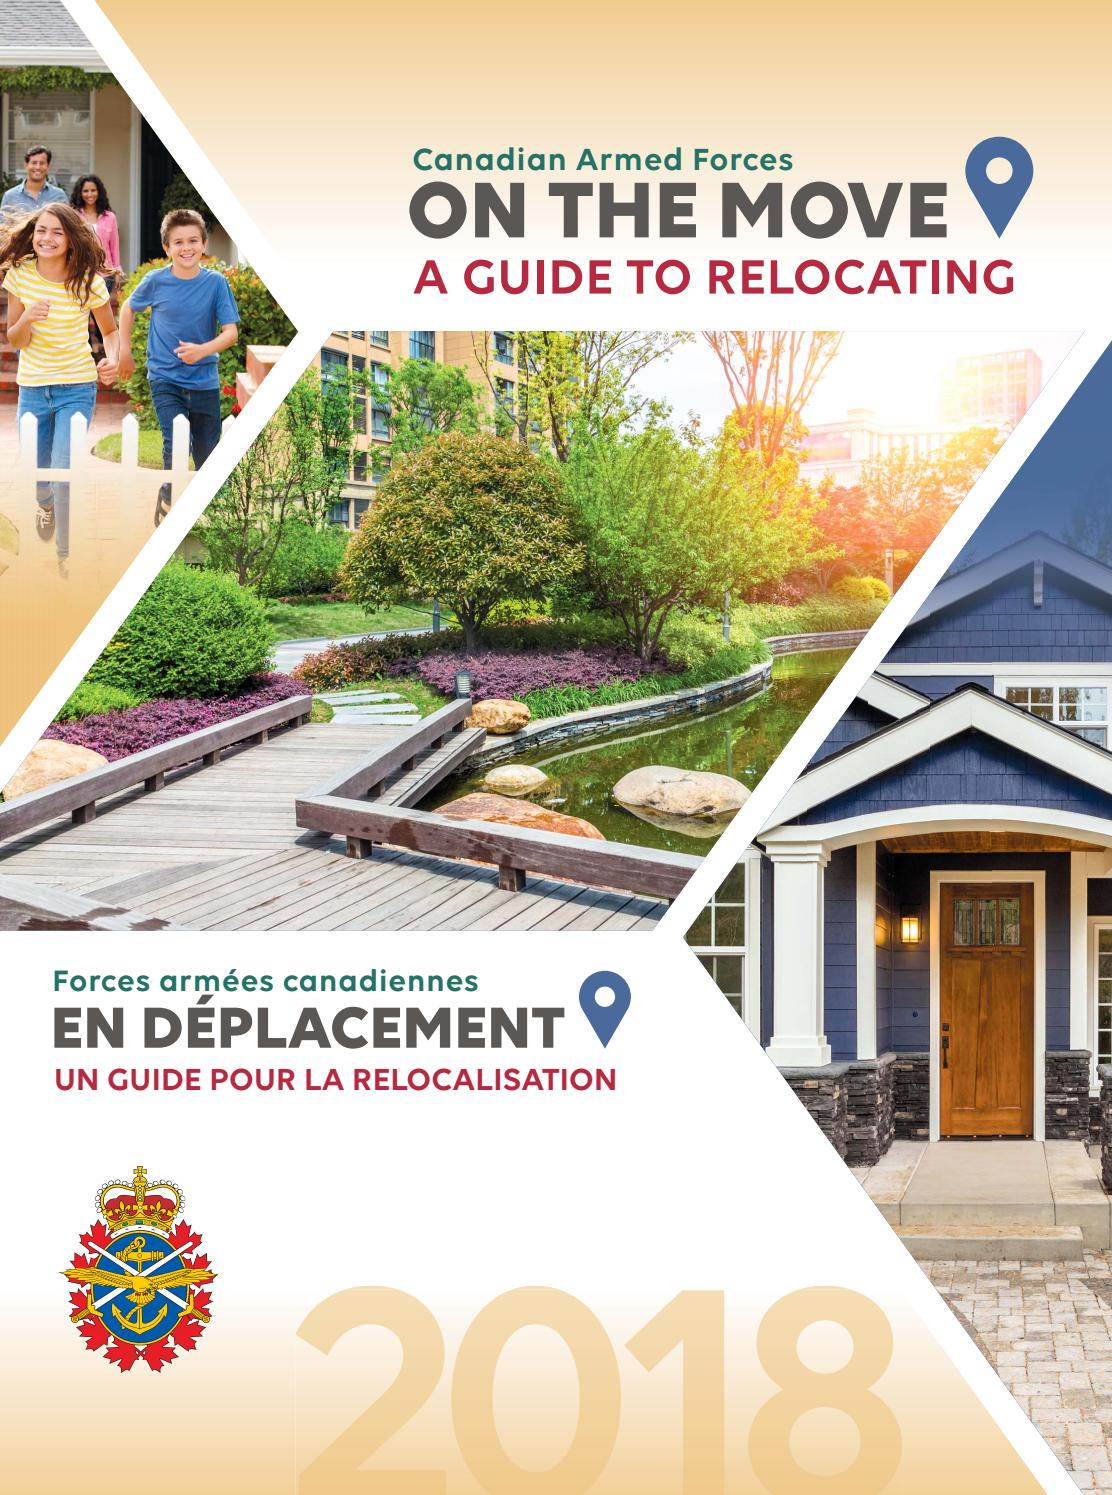 Home Buyers Guide Canadian Armed Forces On The Move 2018 By Well Pump Tripping Circuit Breaker Terry Love Plumbing Remodel Diy Lookout Newspaper Issuu